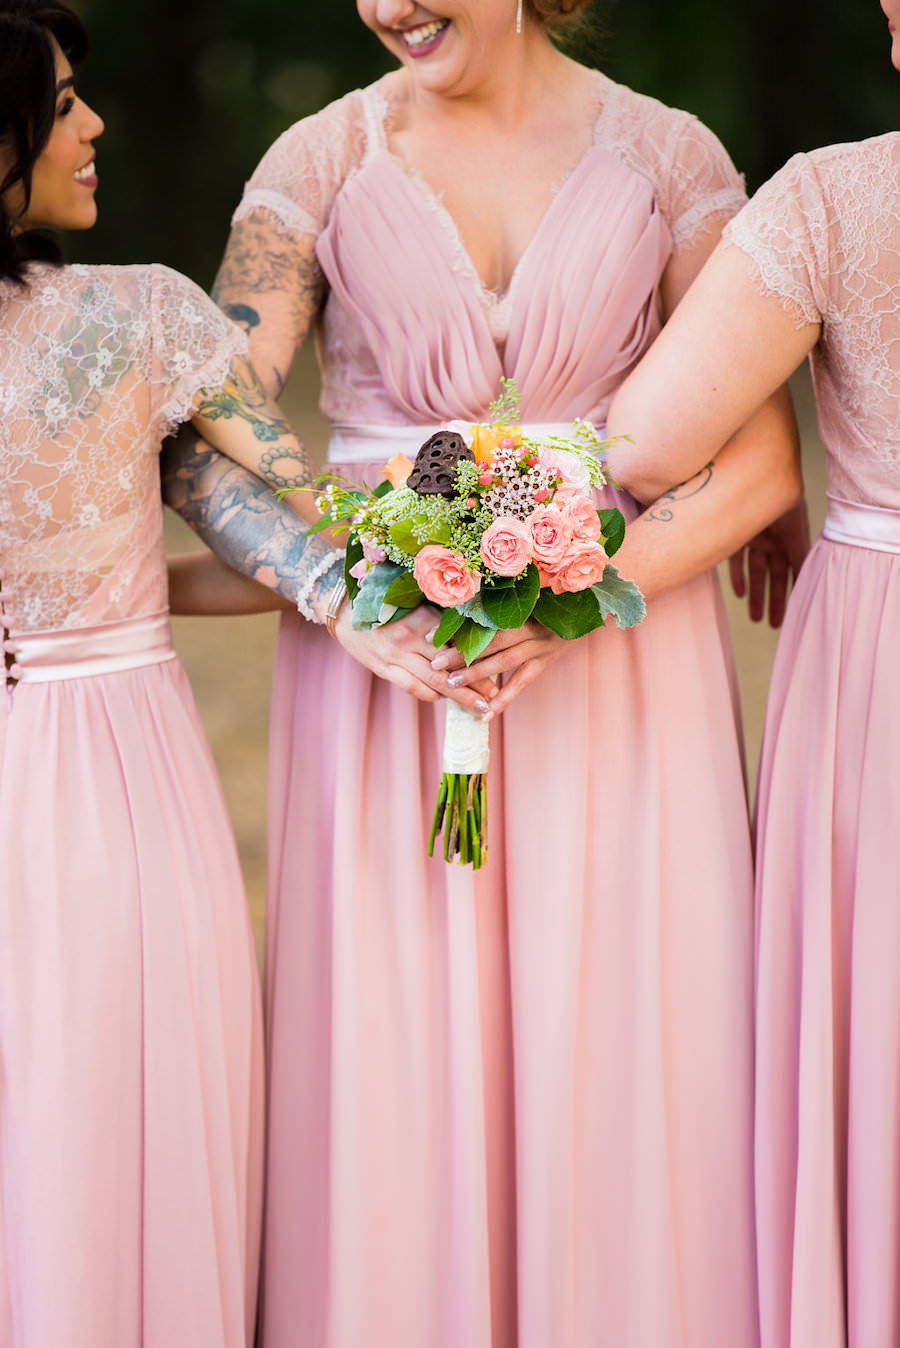 Blush Pink Bridesmaids Dress with Lace Open Back Design with Pink ...